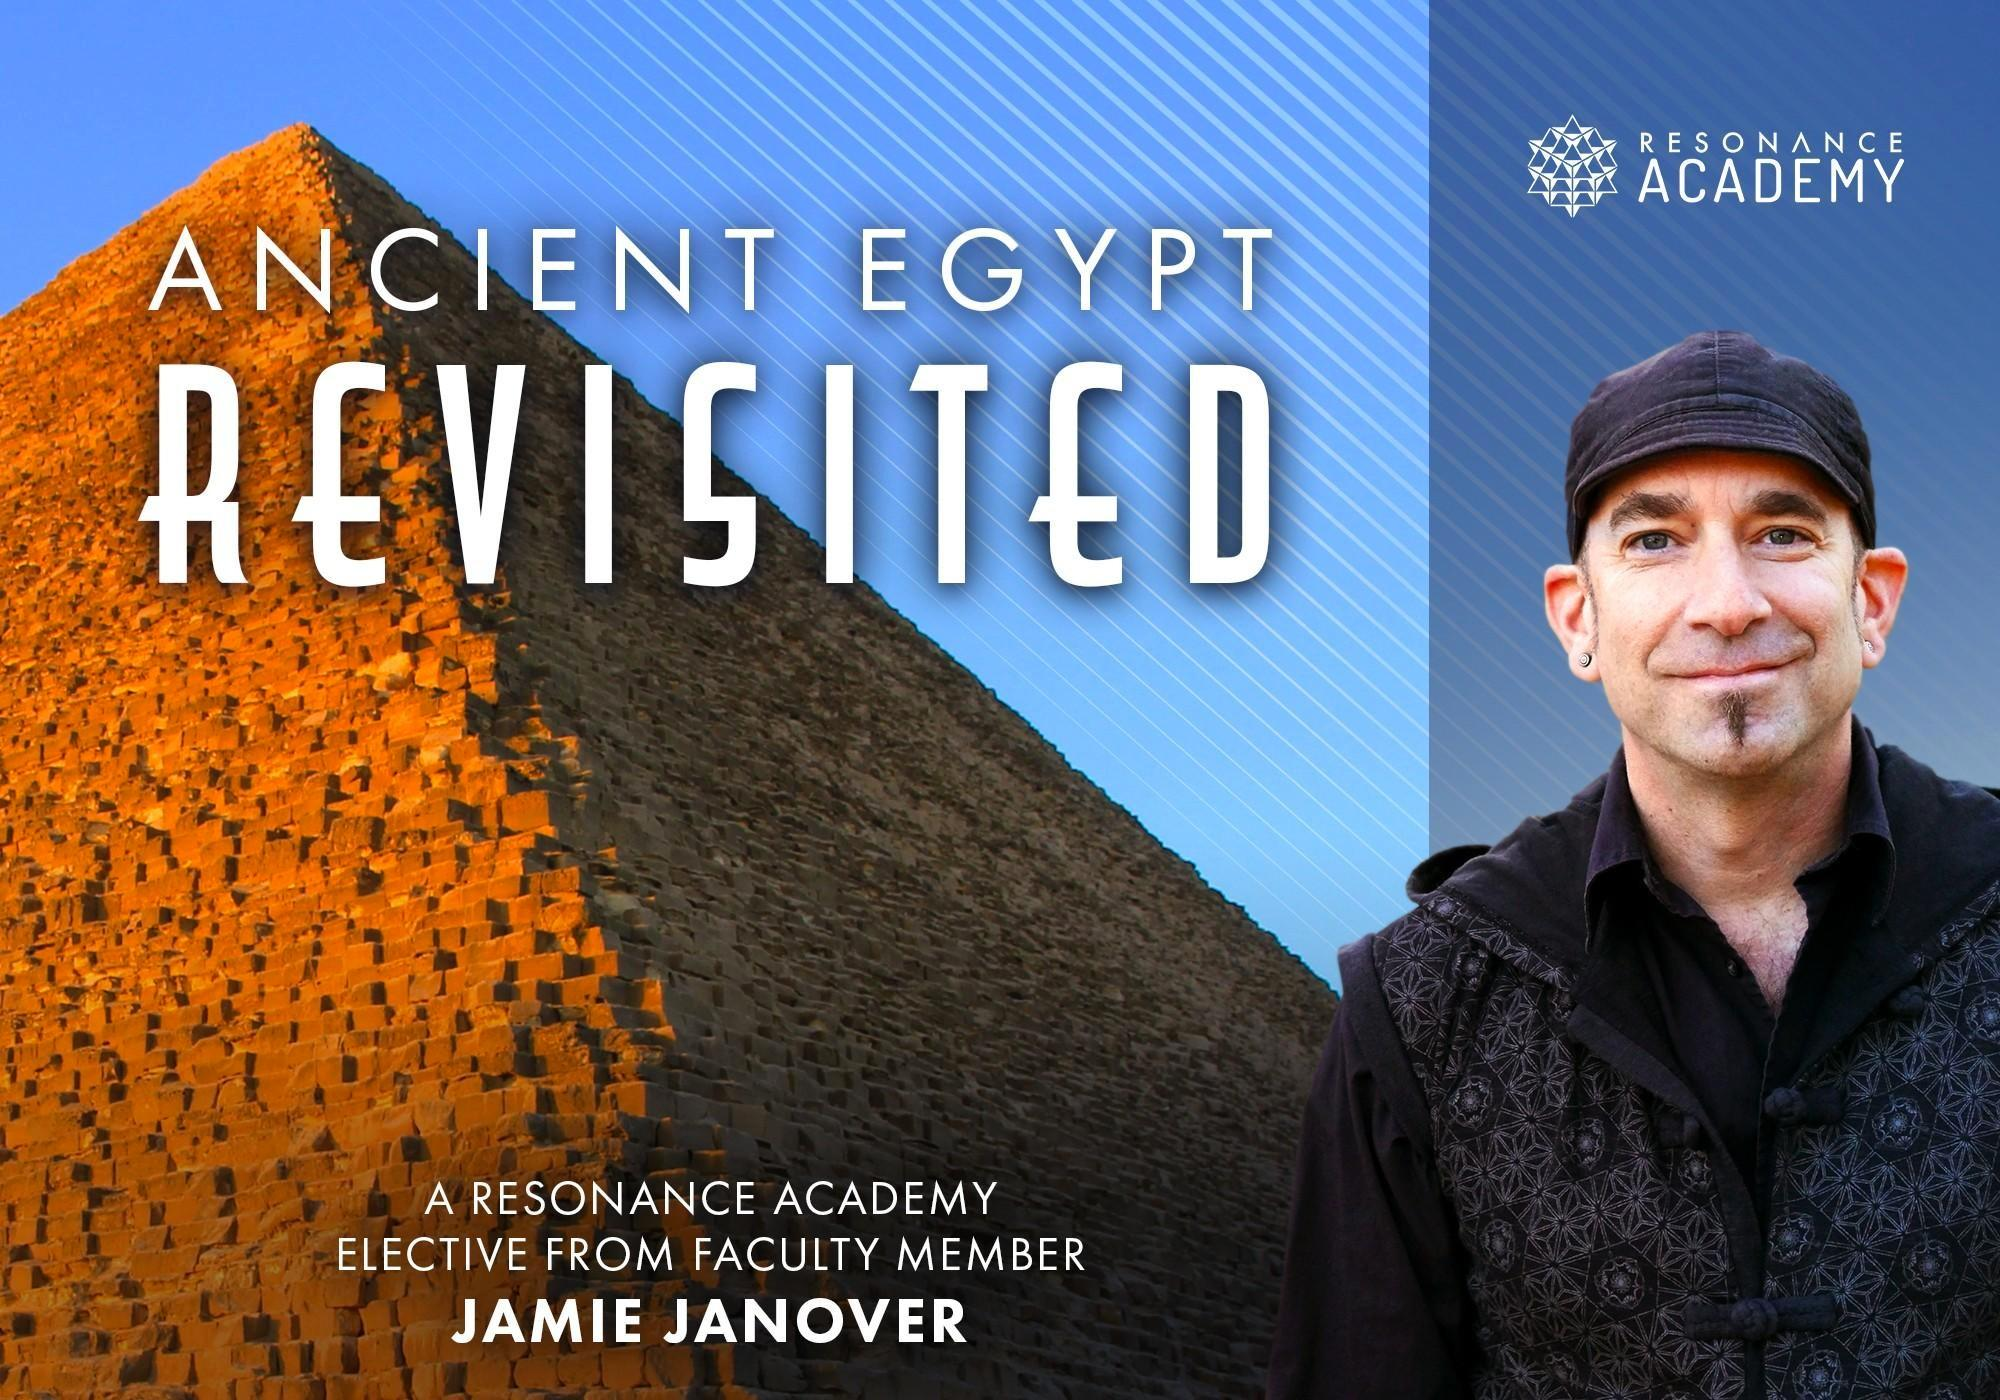 Ancient Egypt Revisited - Jamie Janover